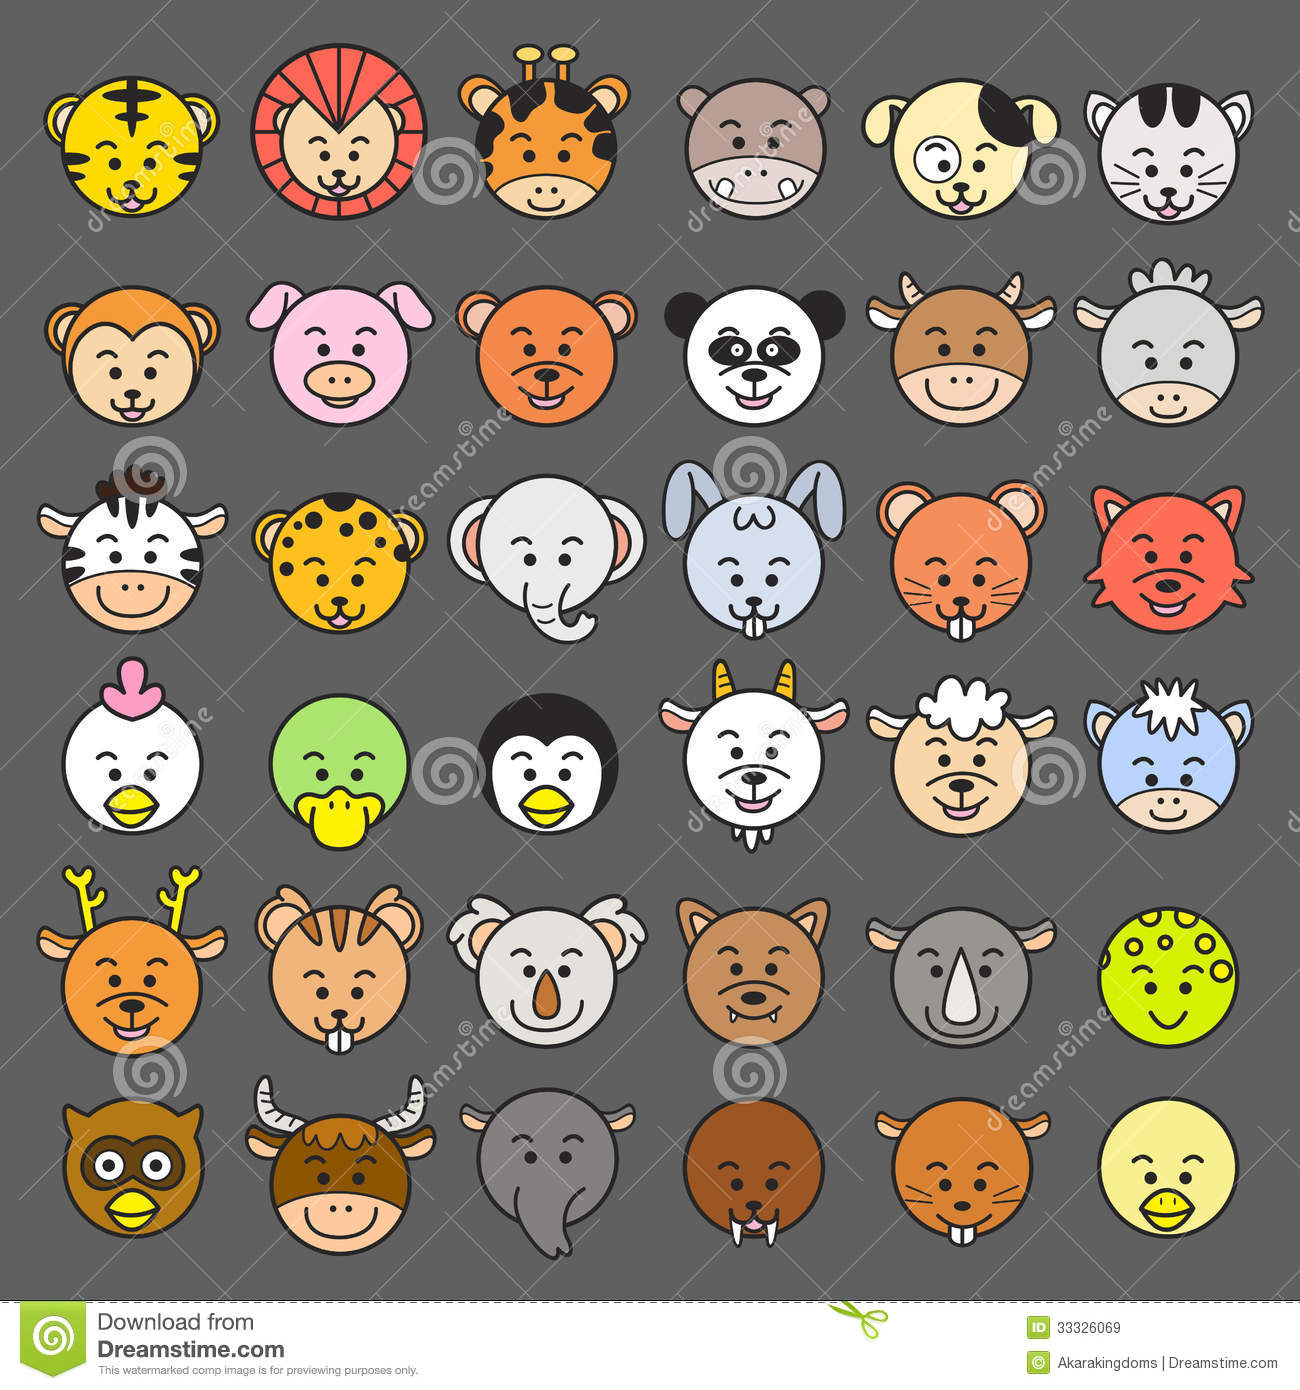 Icon Vector Illustration Of Animal Faces Royalty Free Stock Images Image 33326069